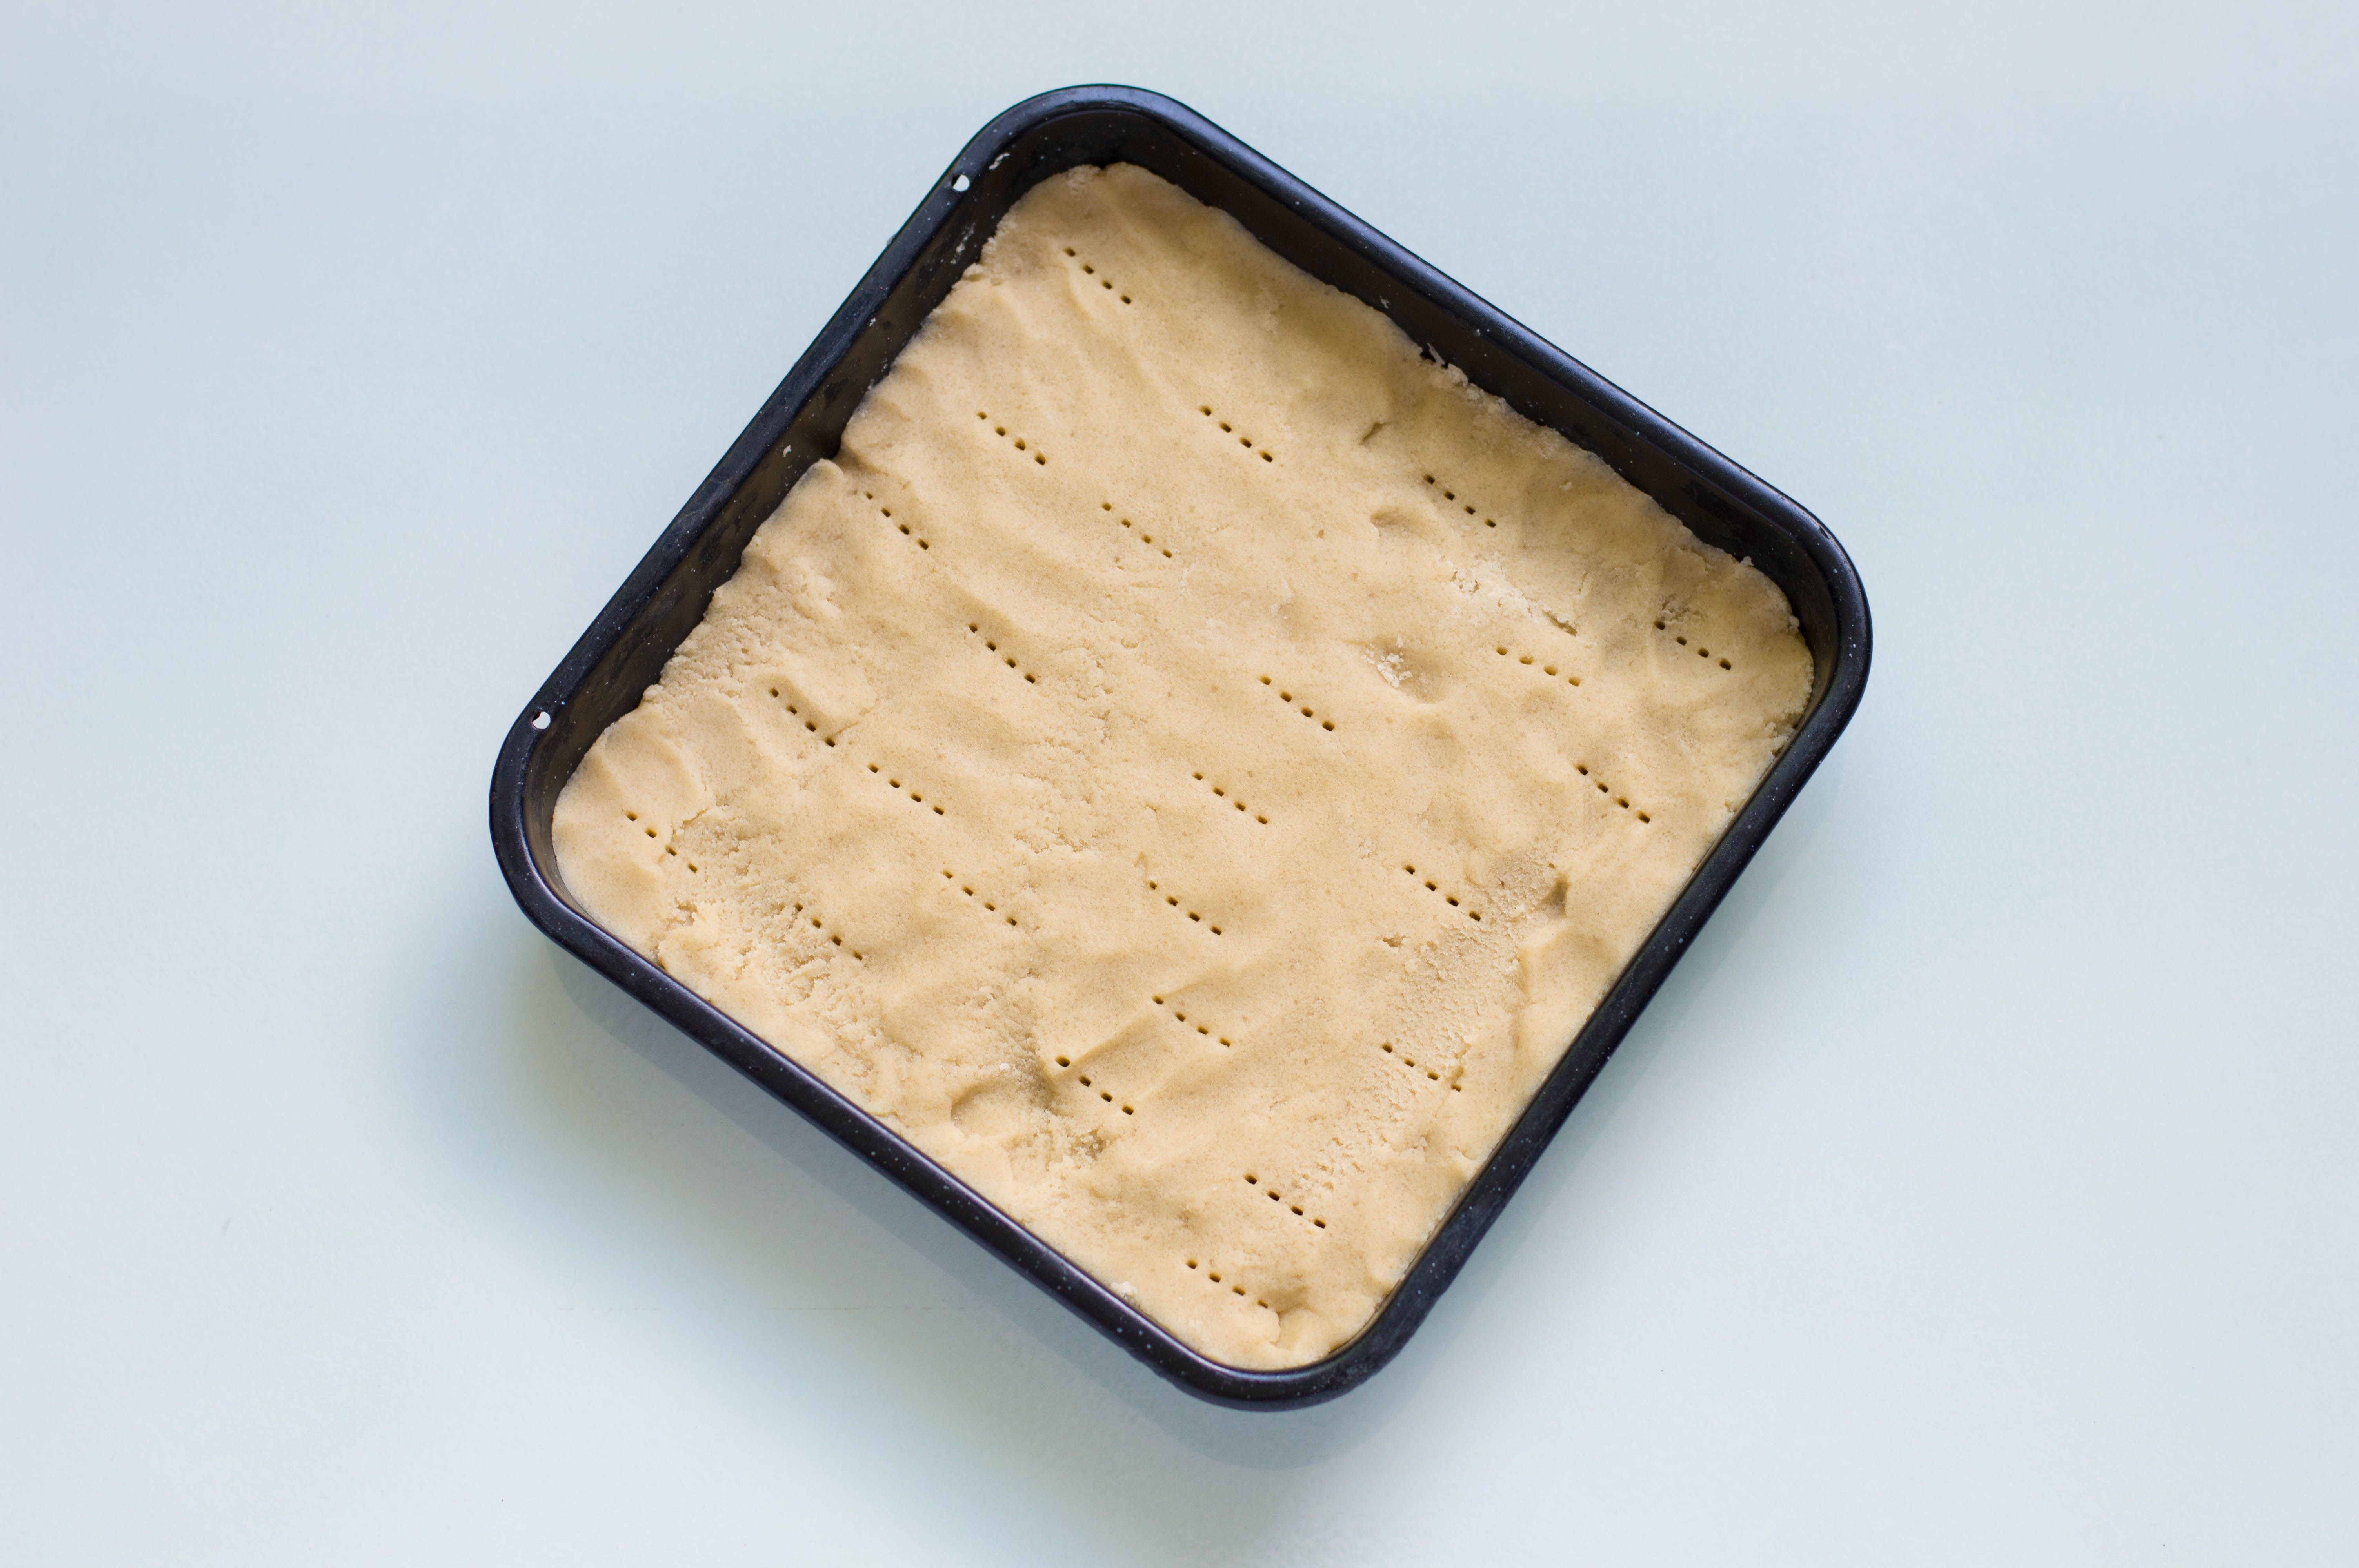 Unbaked shortbread dough in a square pan